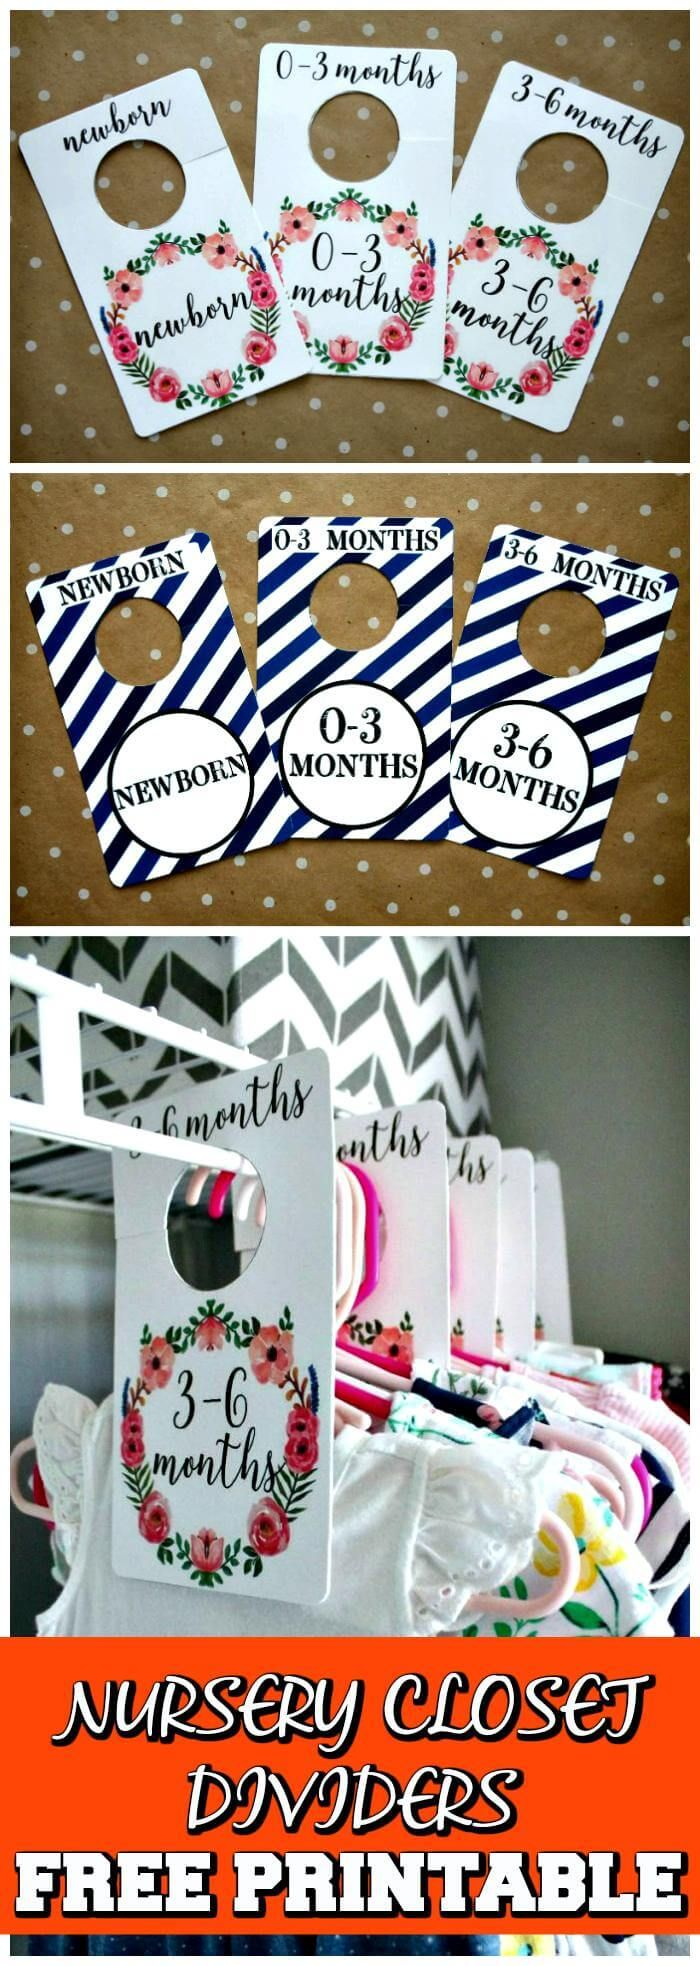 20 Easy DIY Baby Closet Dividers To Organize Baby Clothes images